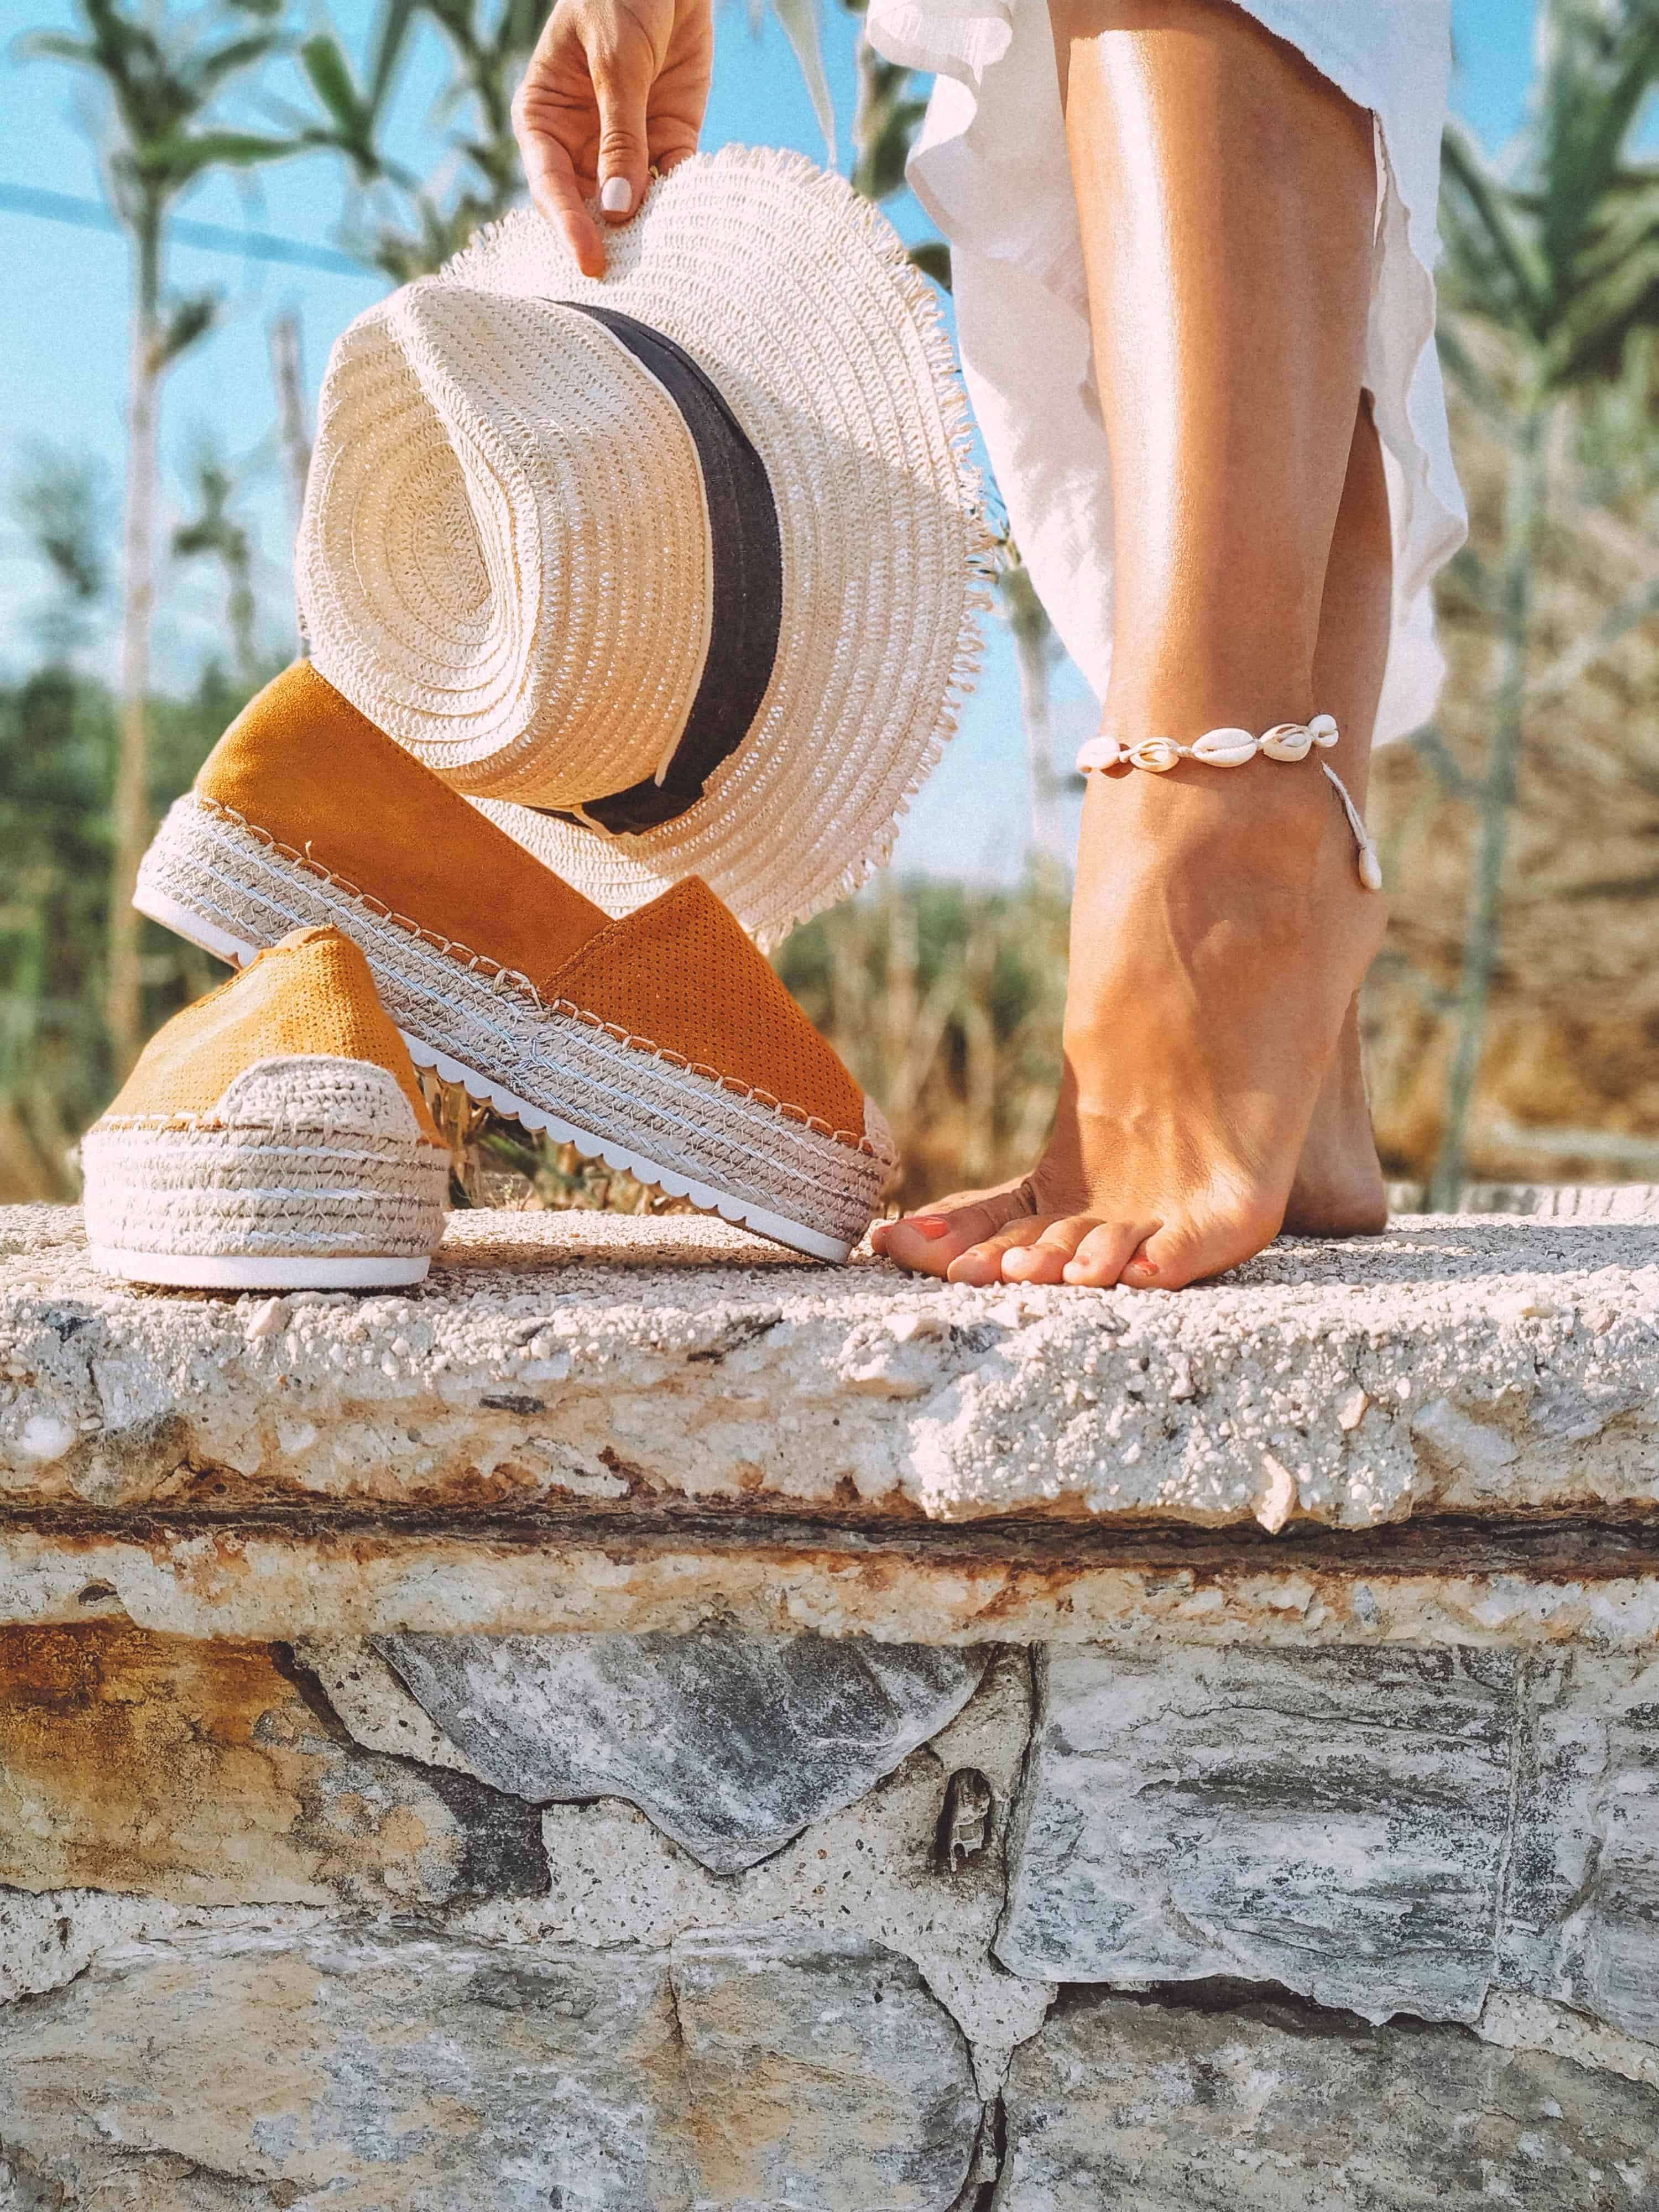 What-are-the-societal-misconceptions-on-the-use-of-ankle-chain